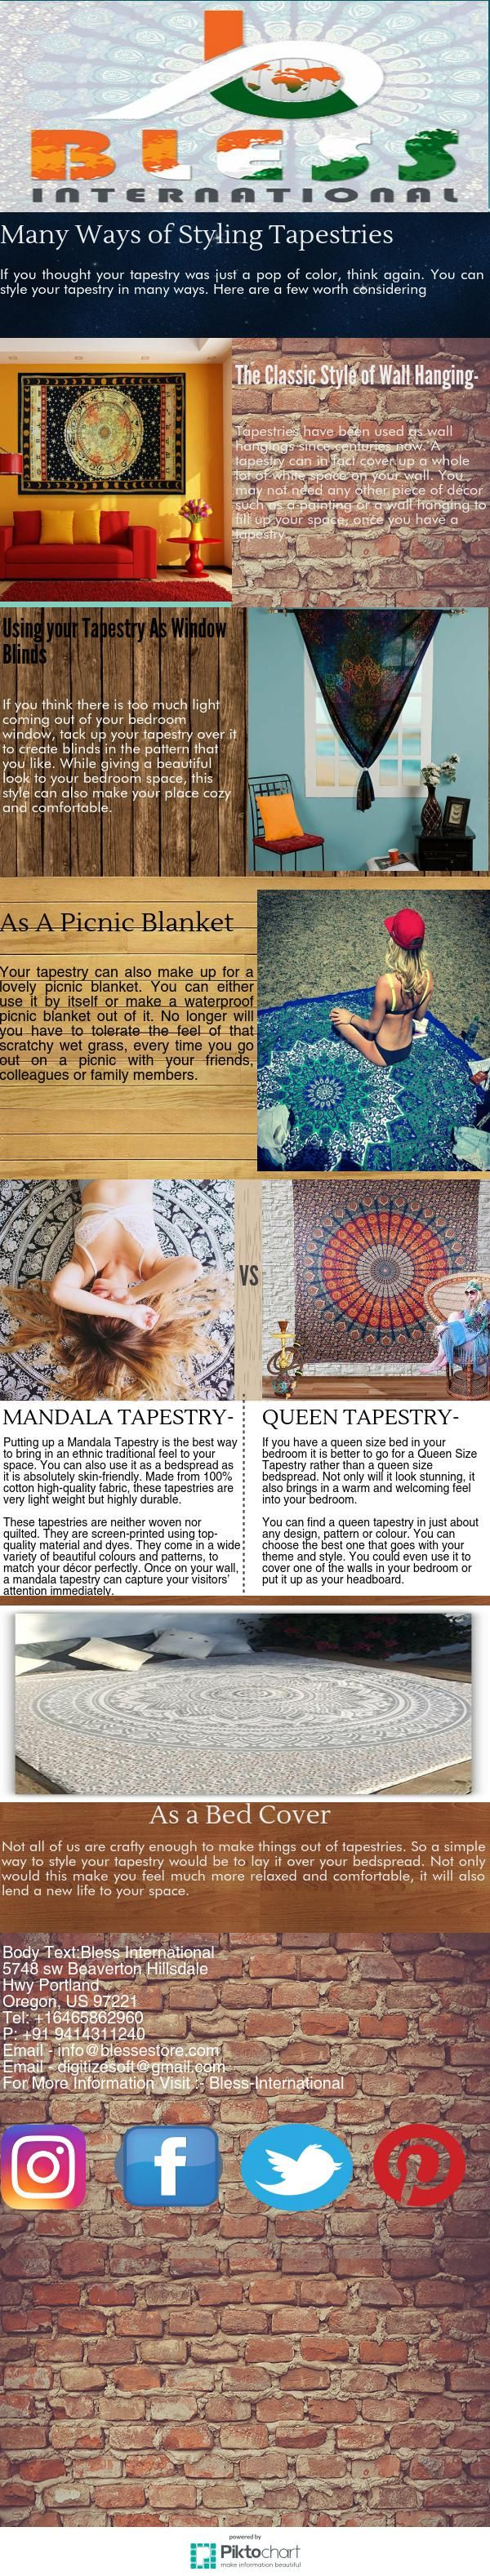 Buy tapestry from tapestry online store USA. Tapestry blanket, tapestry mandala, tapestry zodiac, tapestry yellow, tapestry grey and large tapestry available.